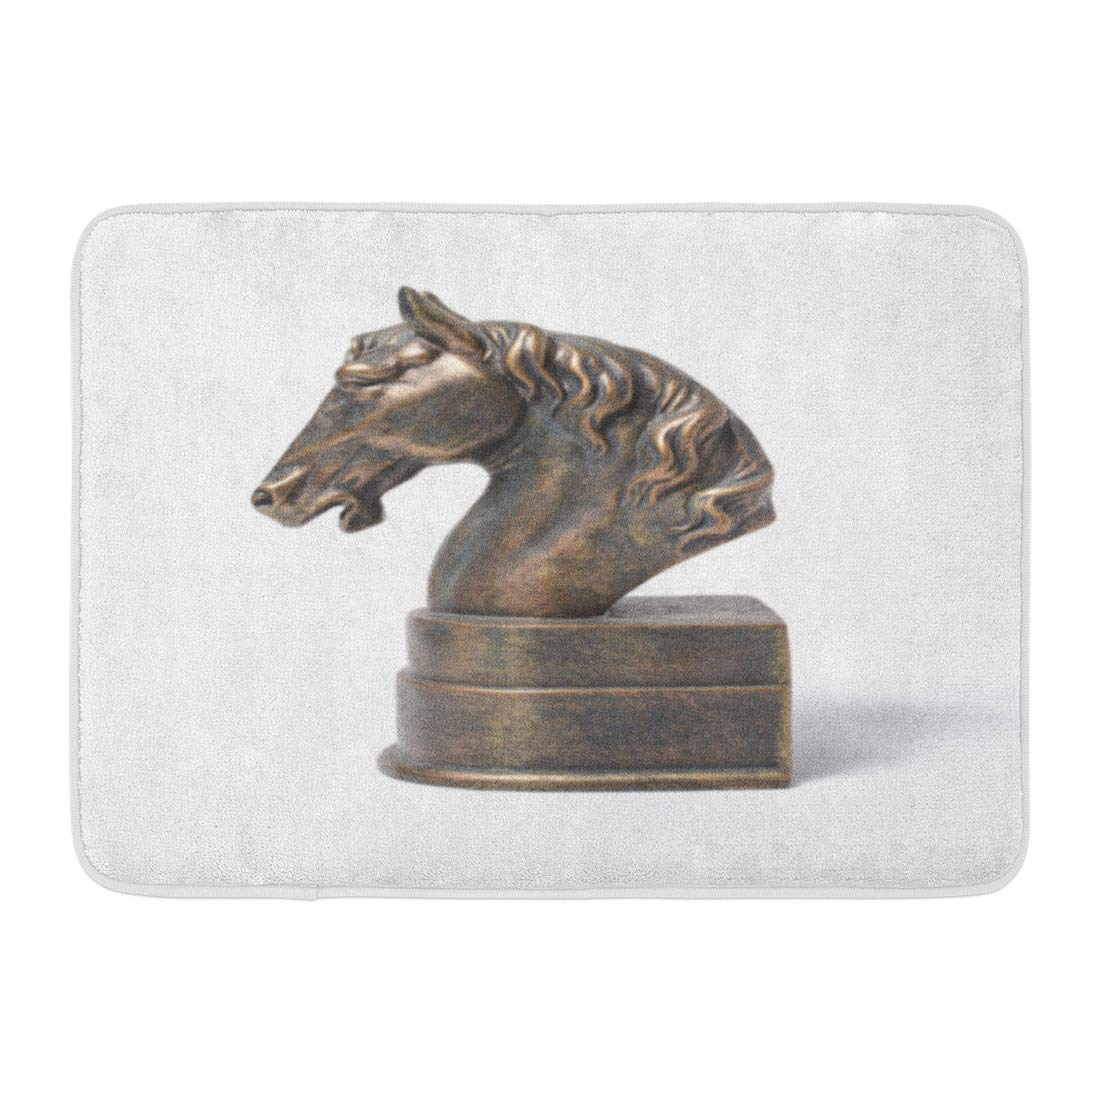 GODPOK Antique Book Bronze Statuette of Horse White Bust Holder Rug Doormat Bath Mat 23.6x15.7 inch